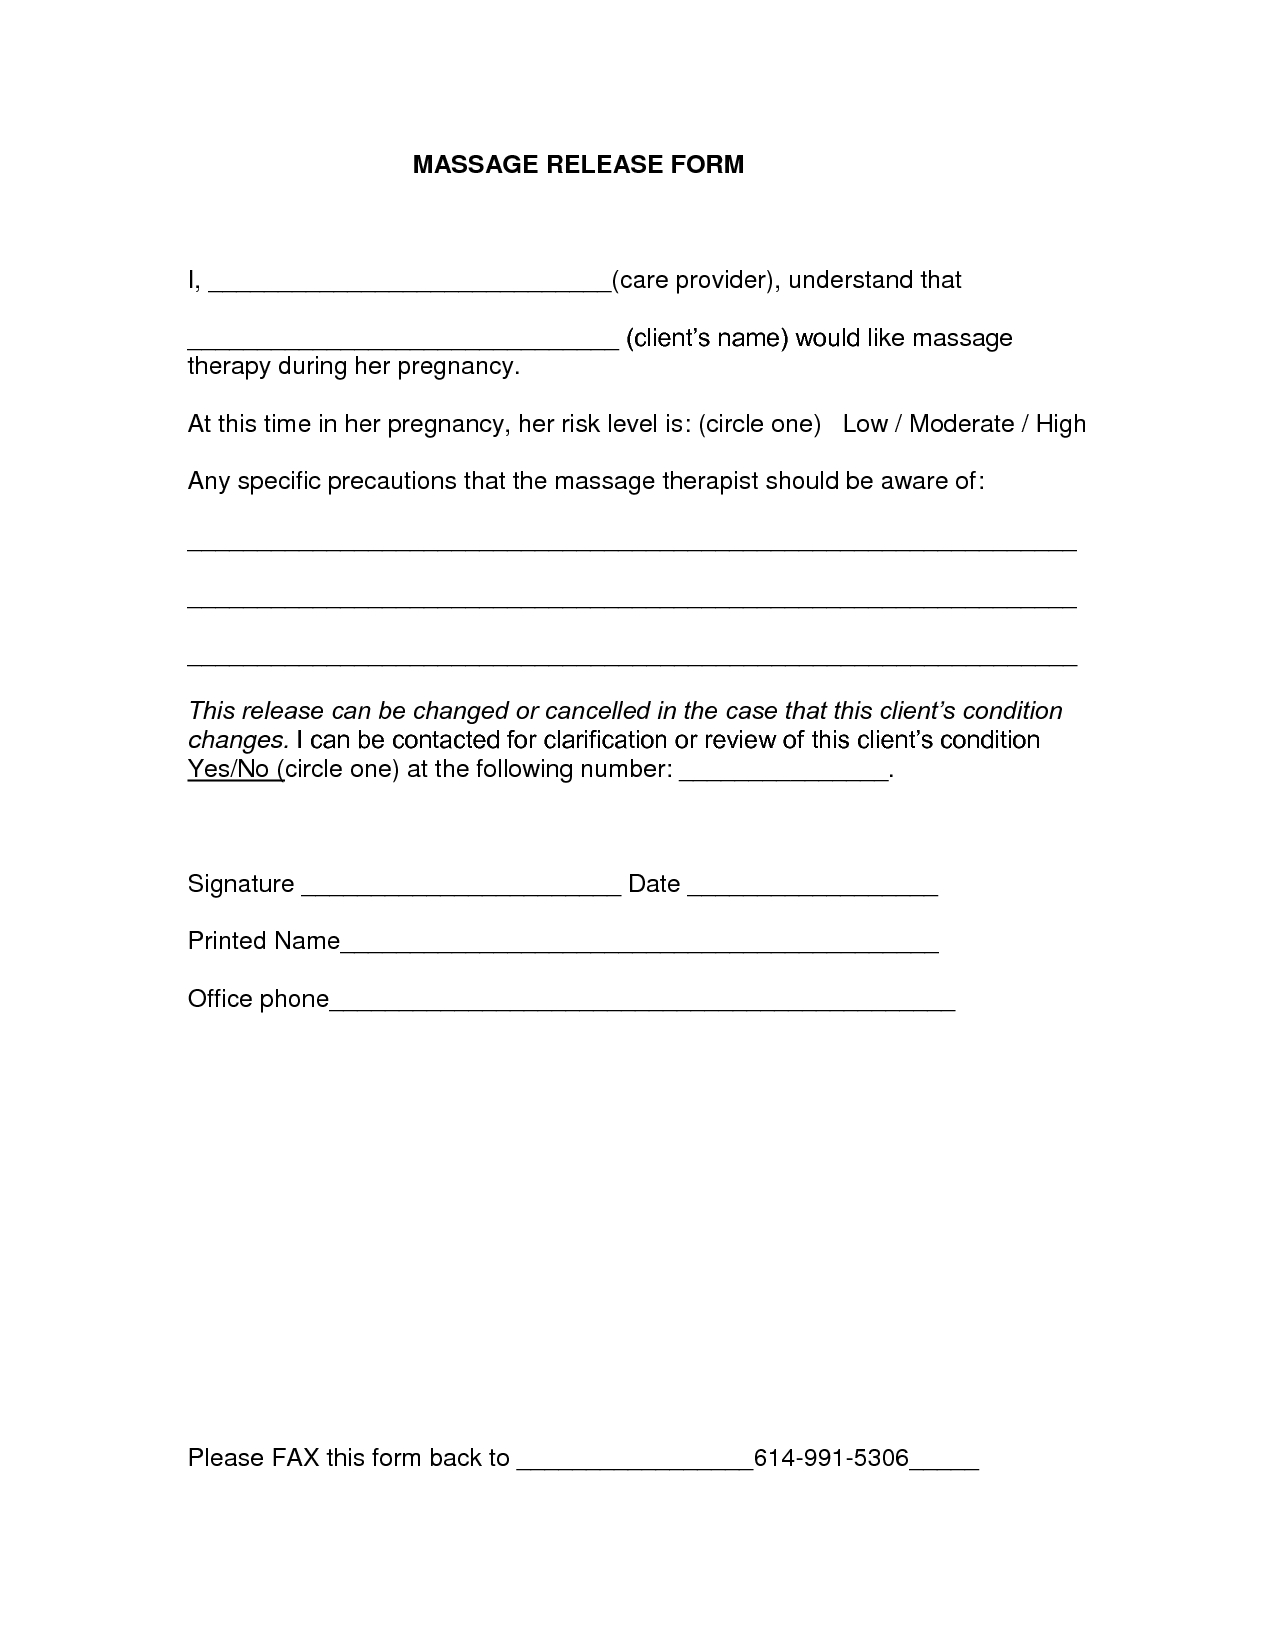 Free Cease and Desist Letter Template - Photoaltan16 Medical Release form Template Release form Template